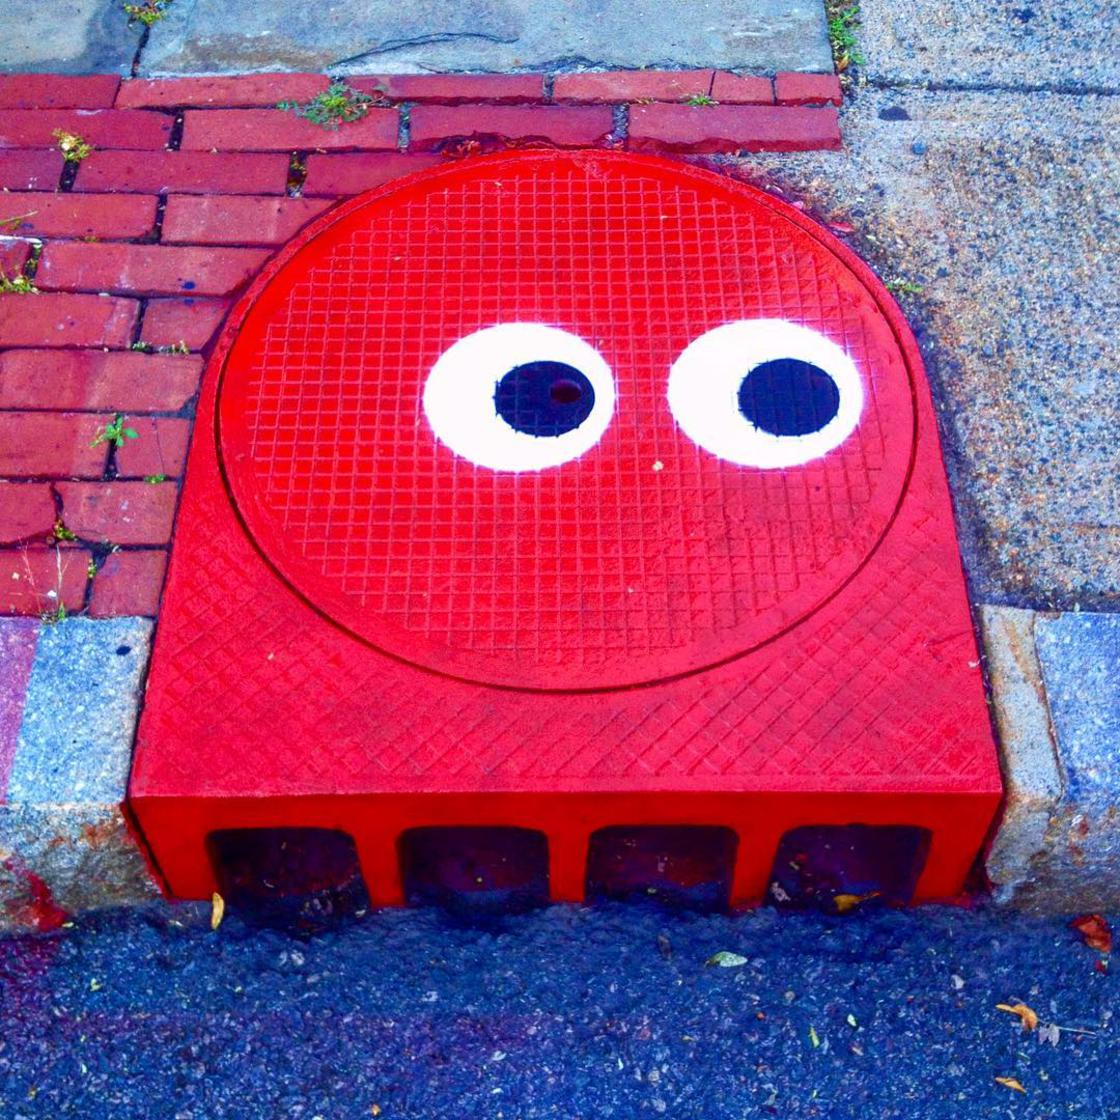 The twisted street art of Tom Bob invades the streets of New York